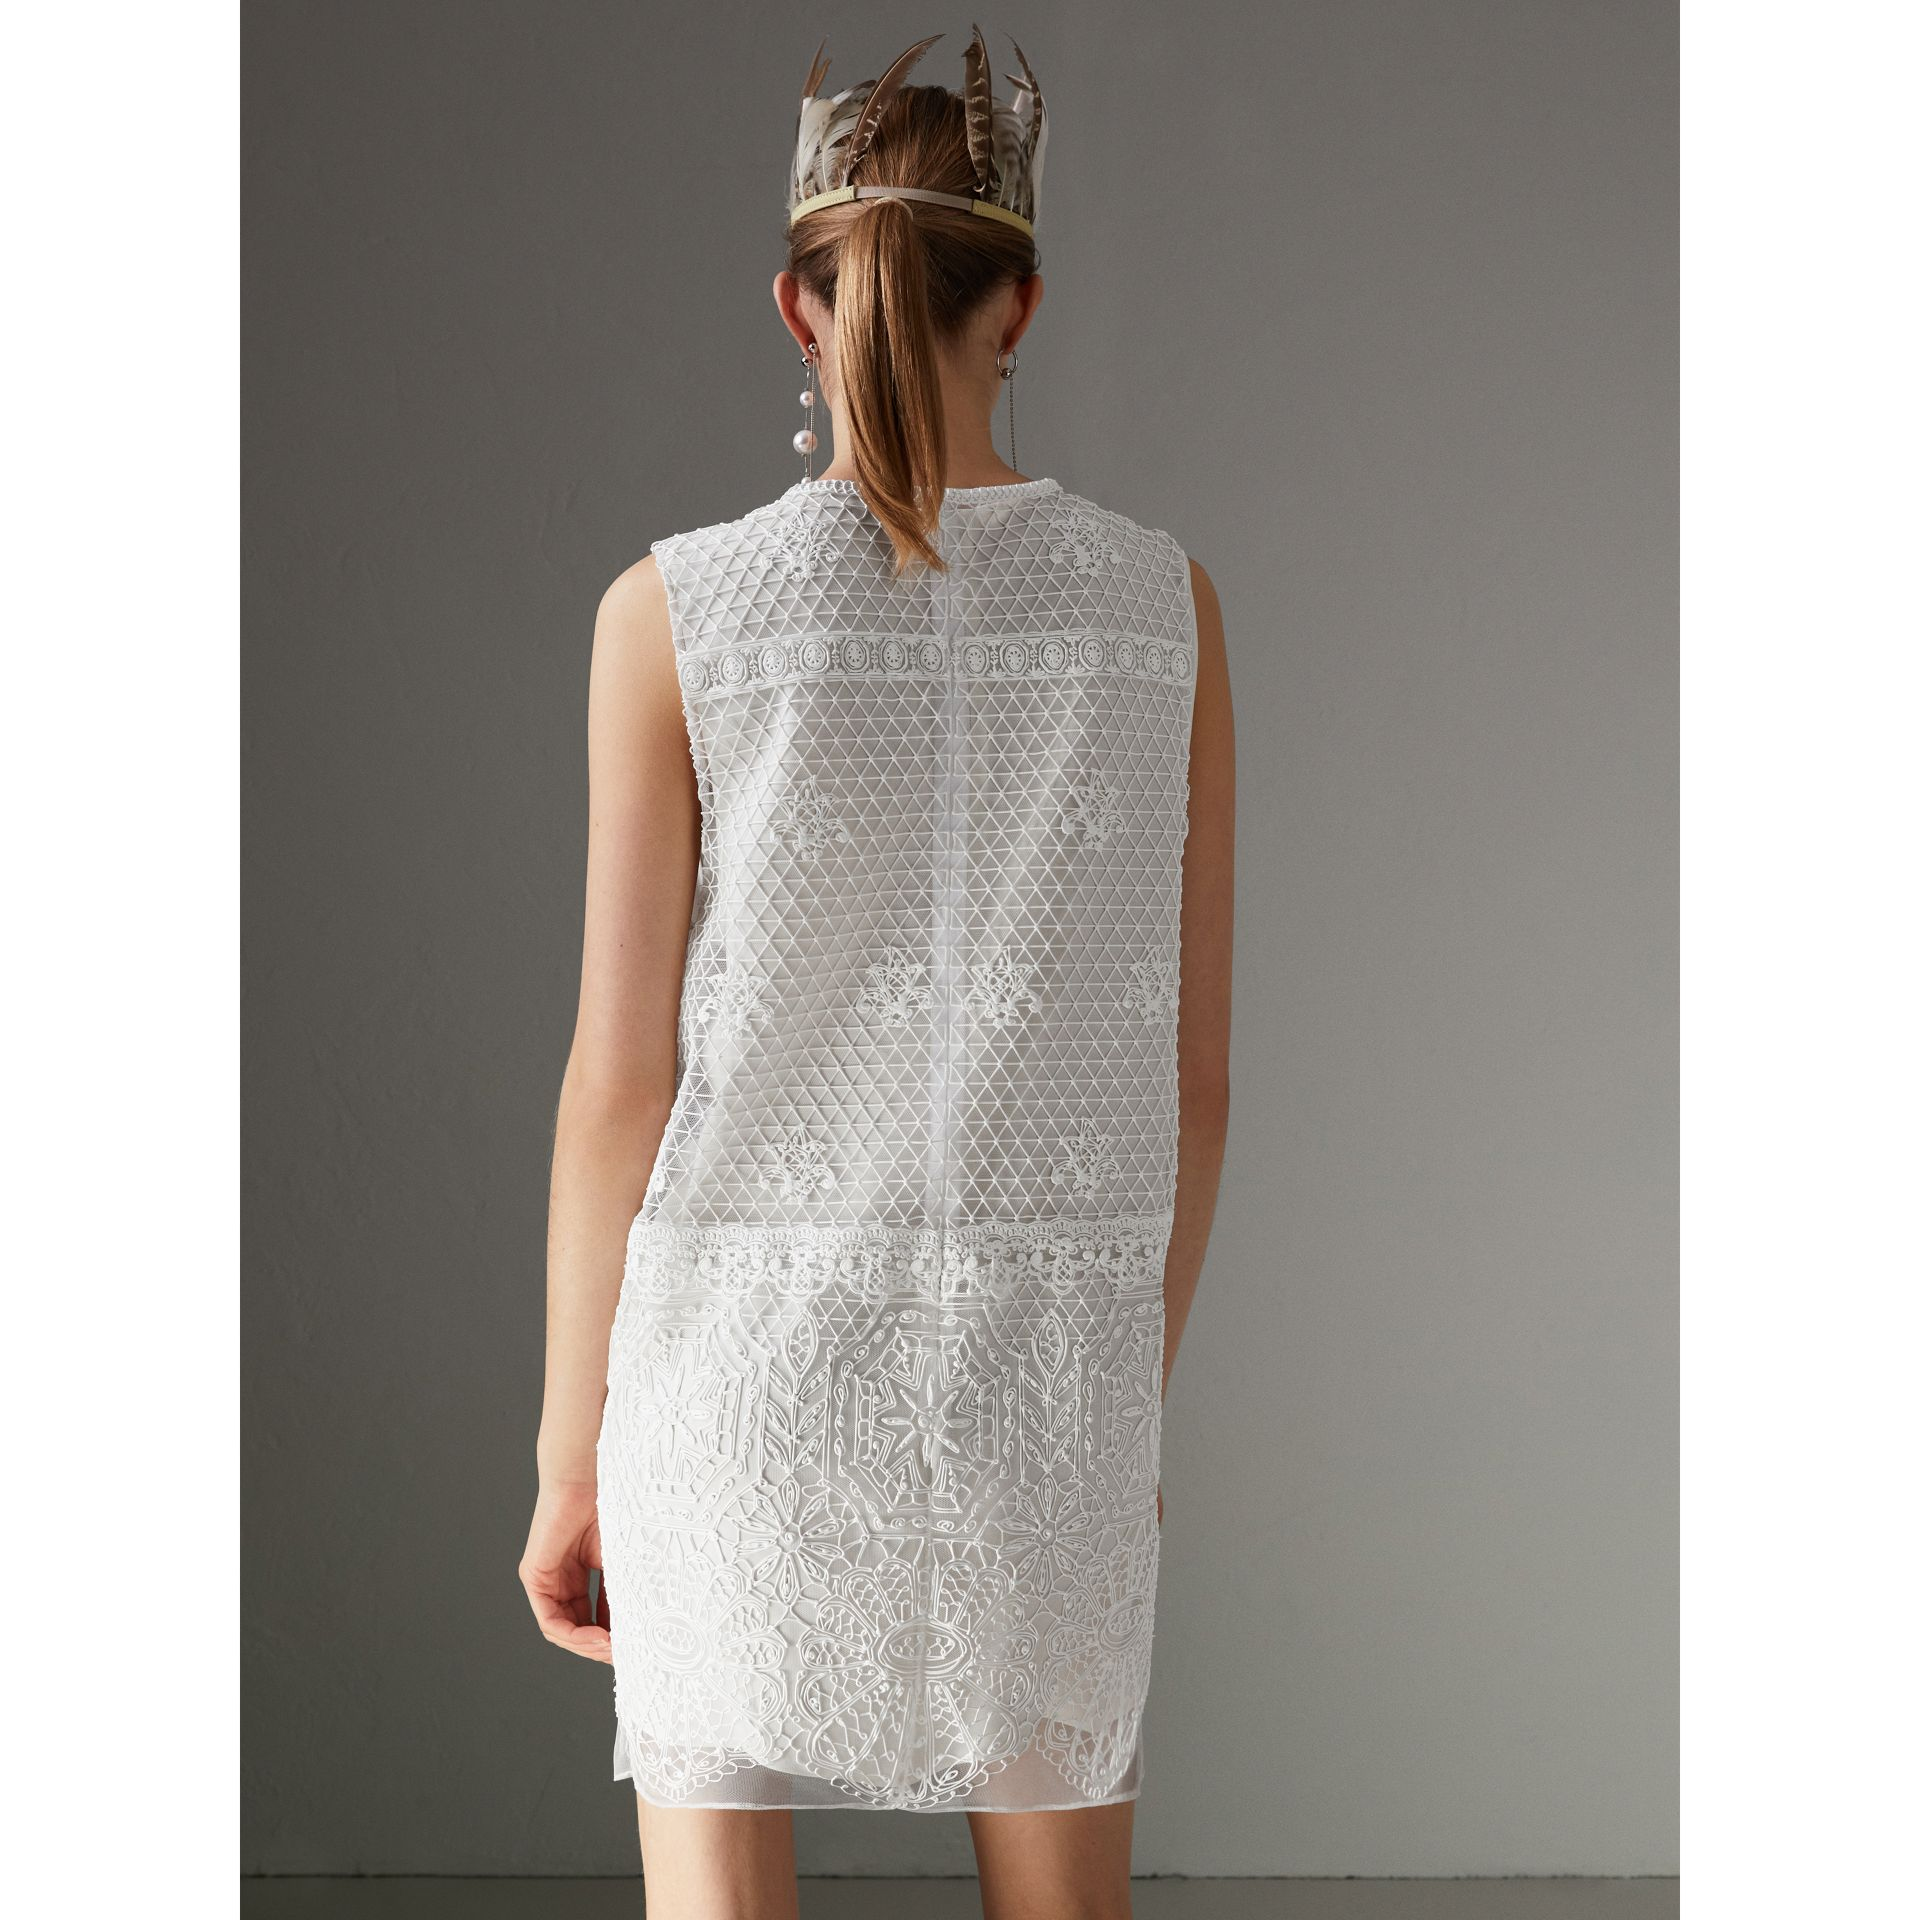 Silicone Lace Mini Dress in White - Women | Burberry - gallery image 2